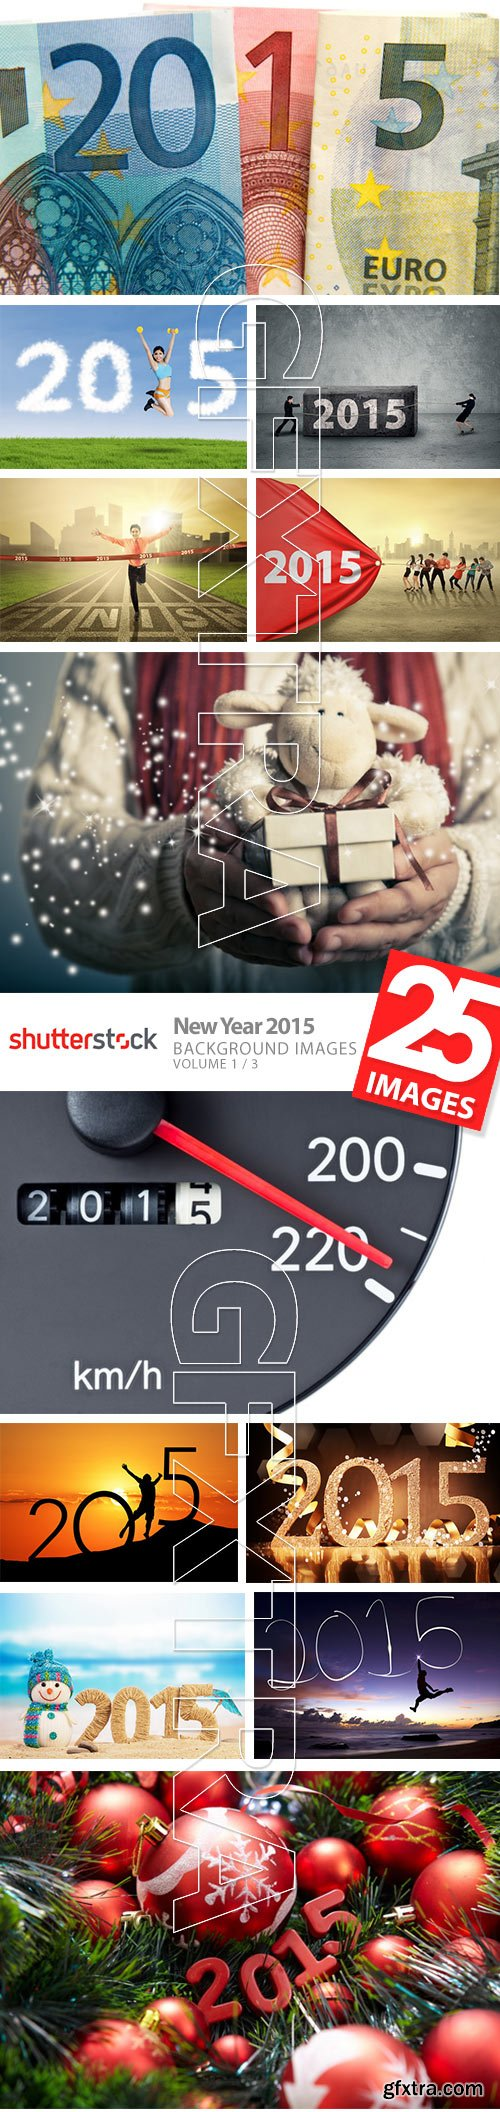 New Year 2015 - Background Images Vol.1, 25xJPG